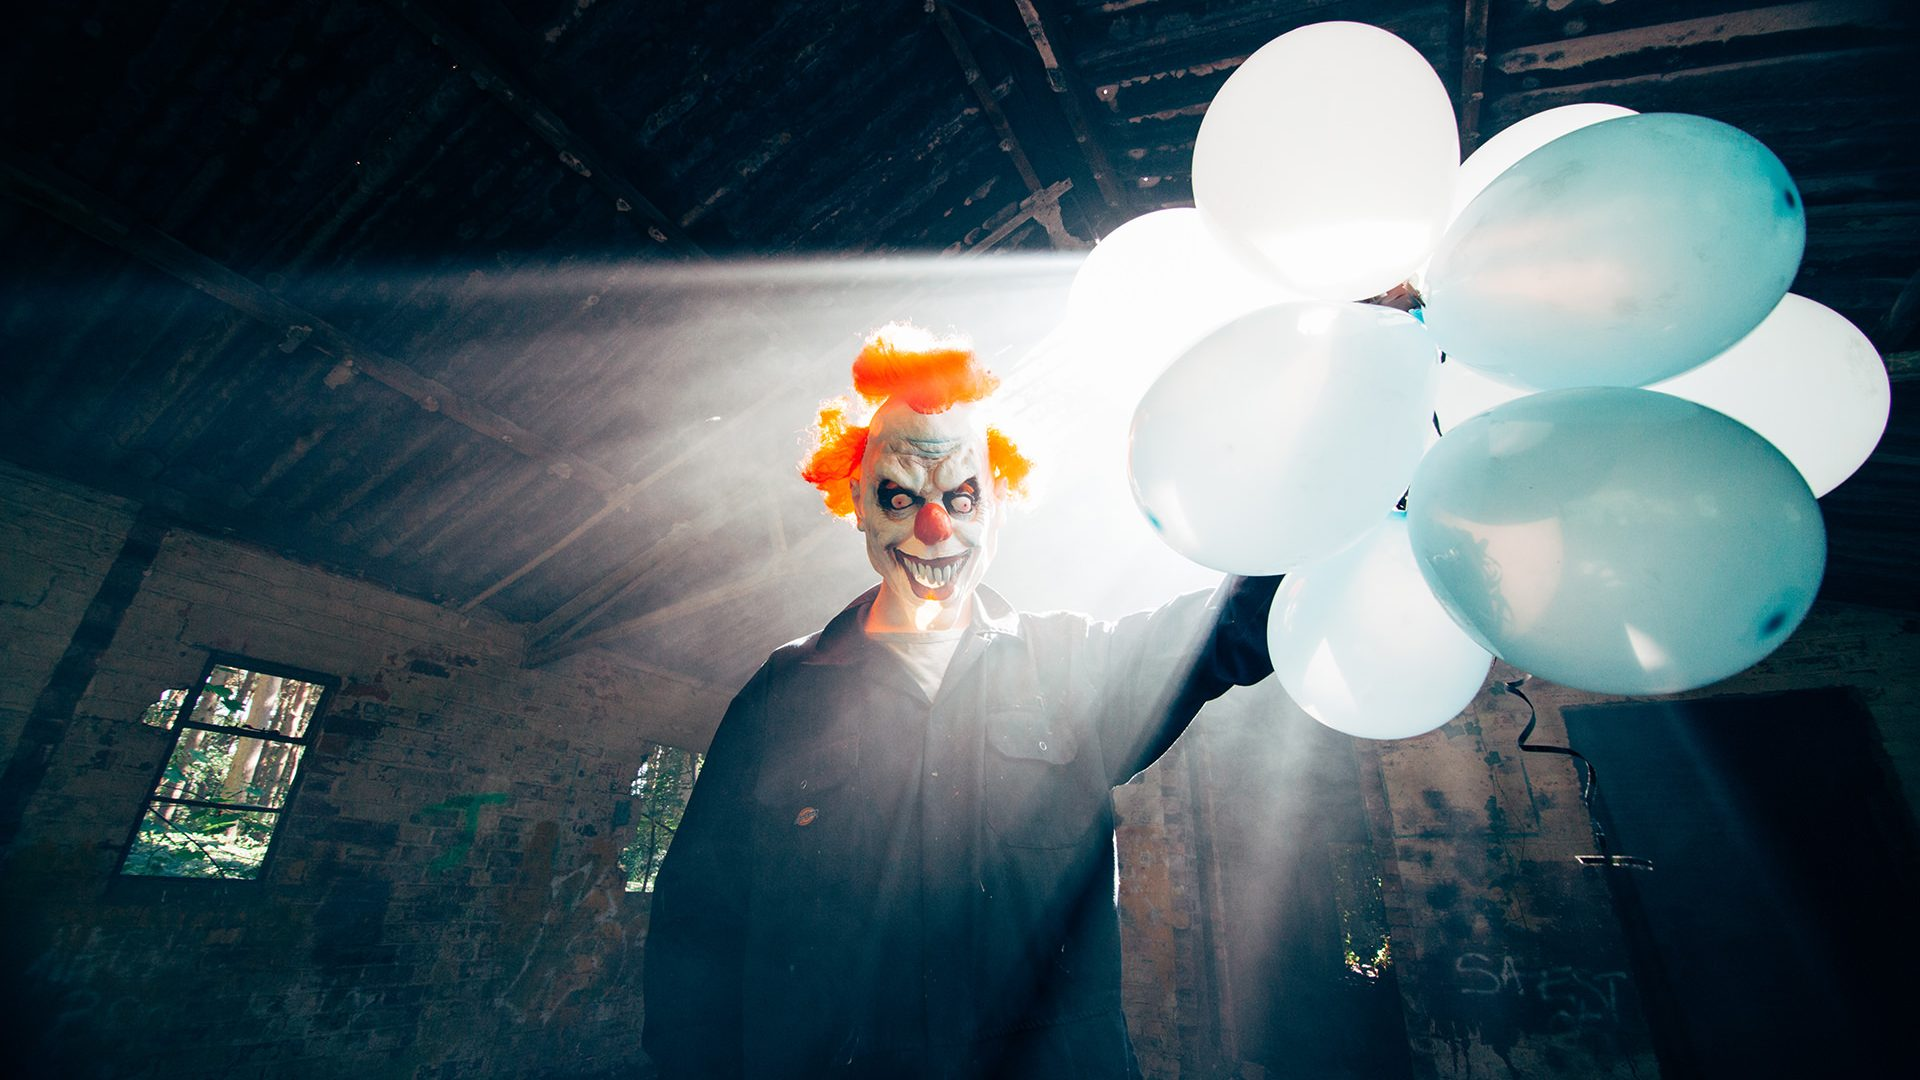 Killer Clown Horror Photography